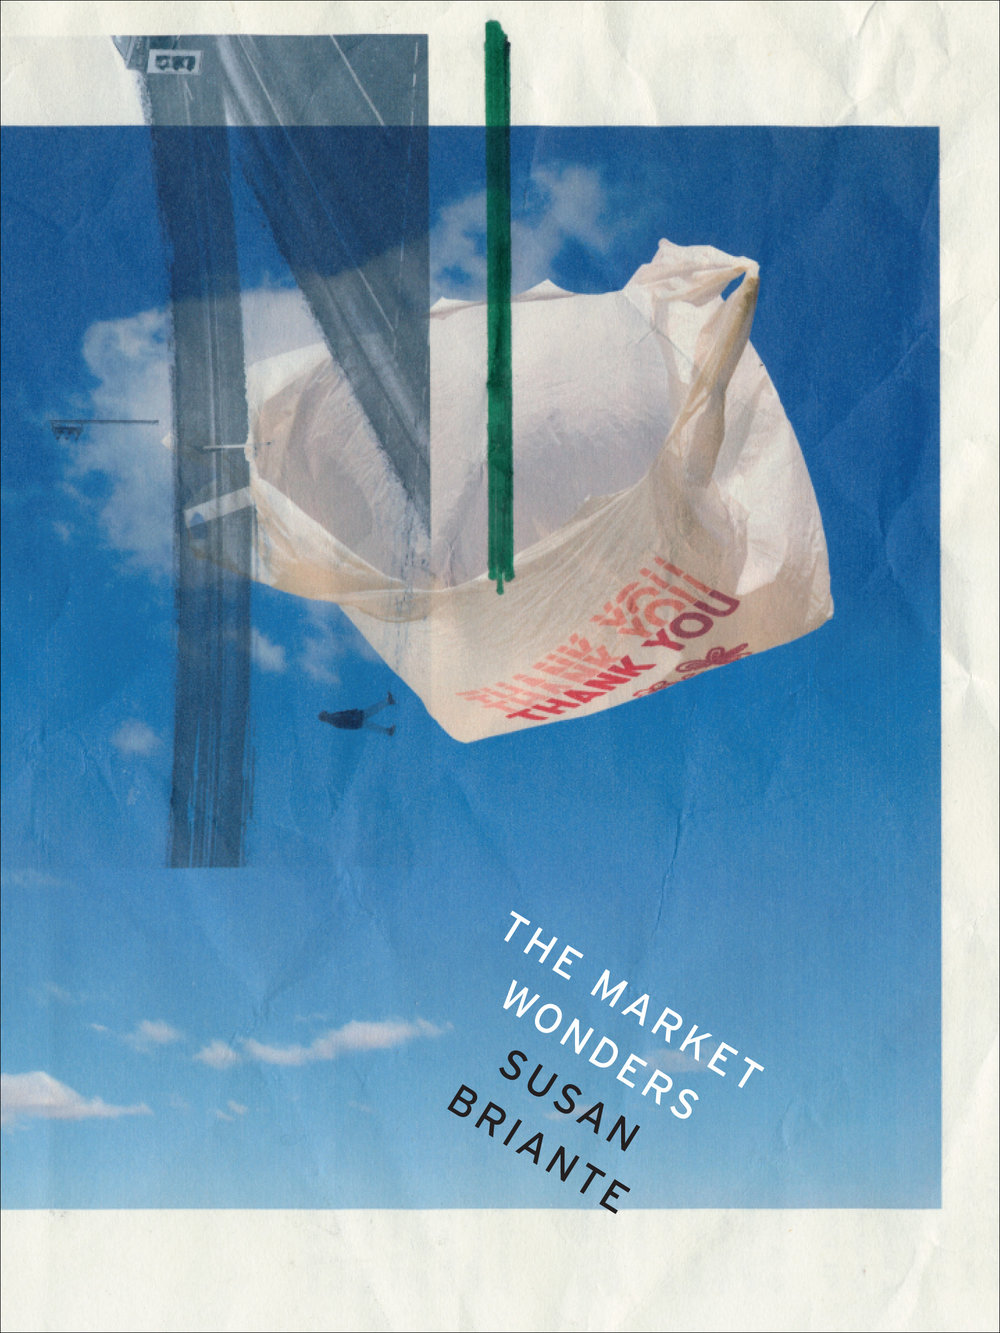 The Market Wonders  - a poem by Susan Briante